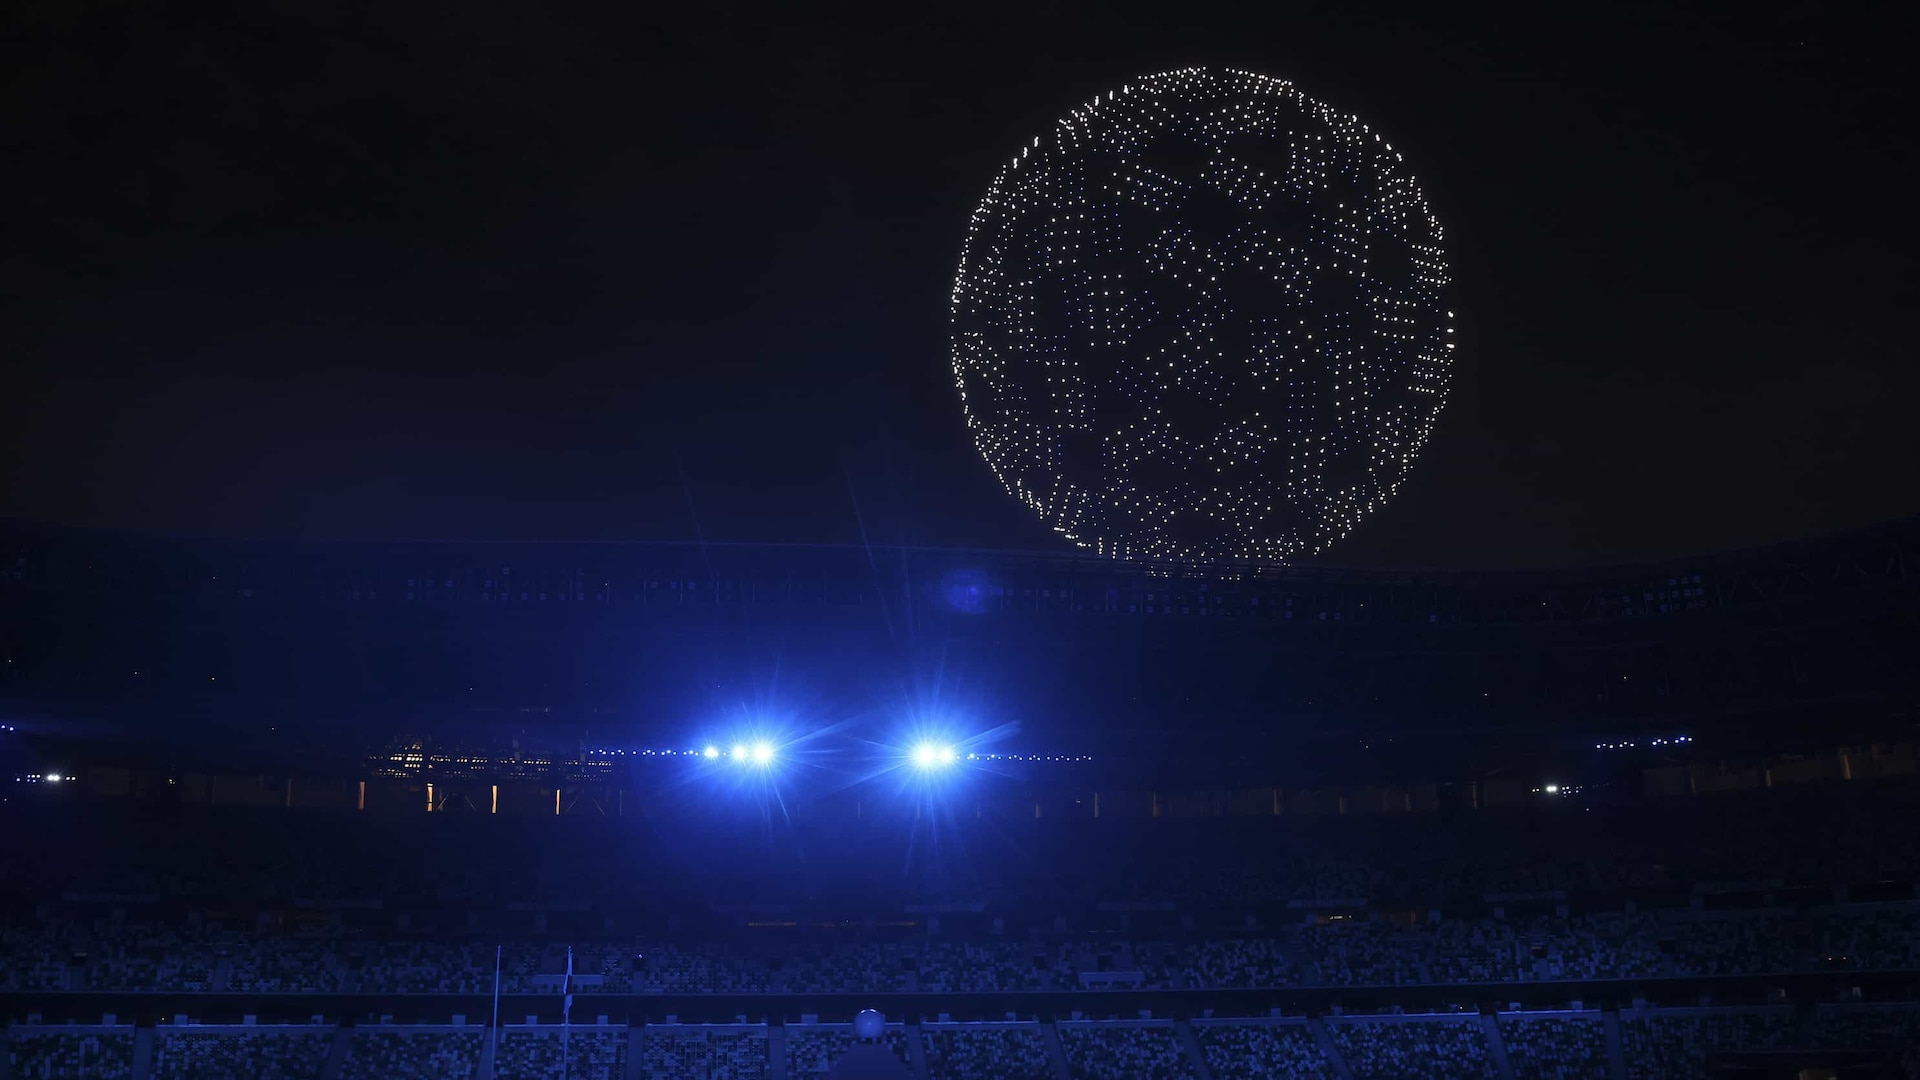 1,825 drones hover over the Olympic Stadium for the 2020 Tokyo Olympic Games Opening Ceremony